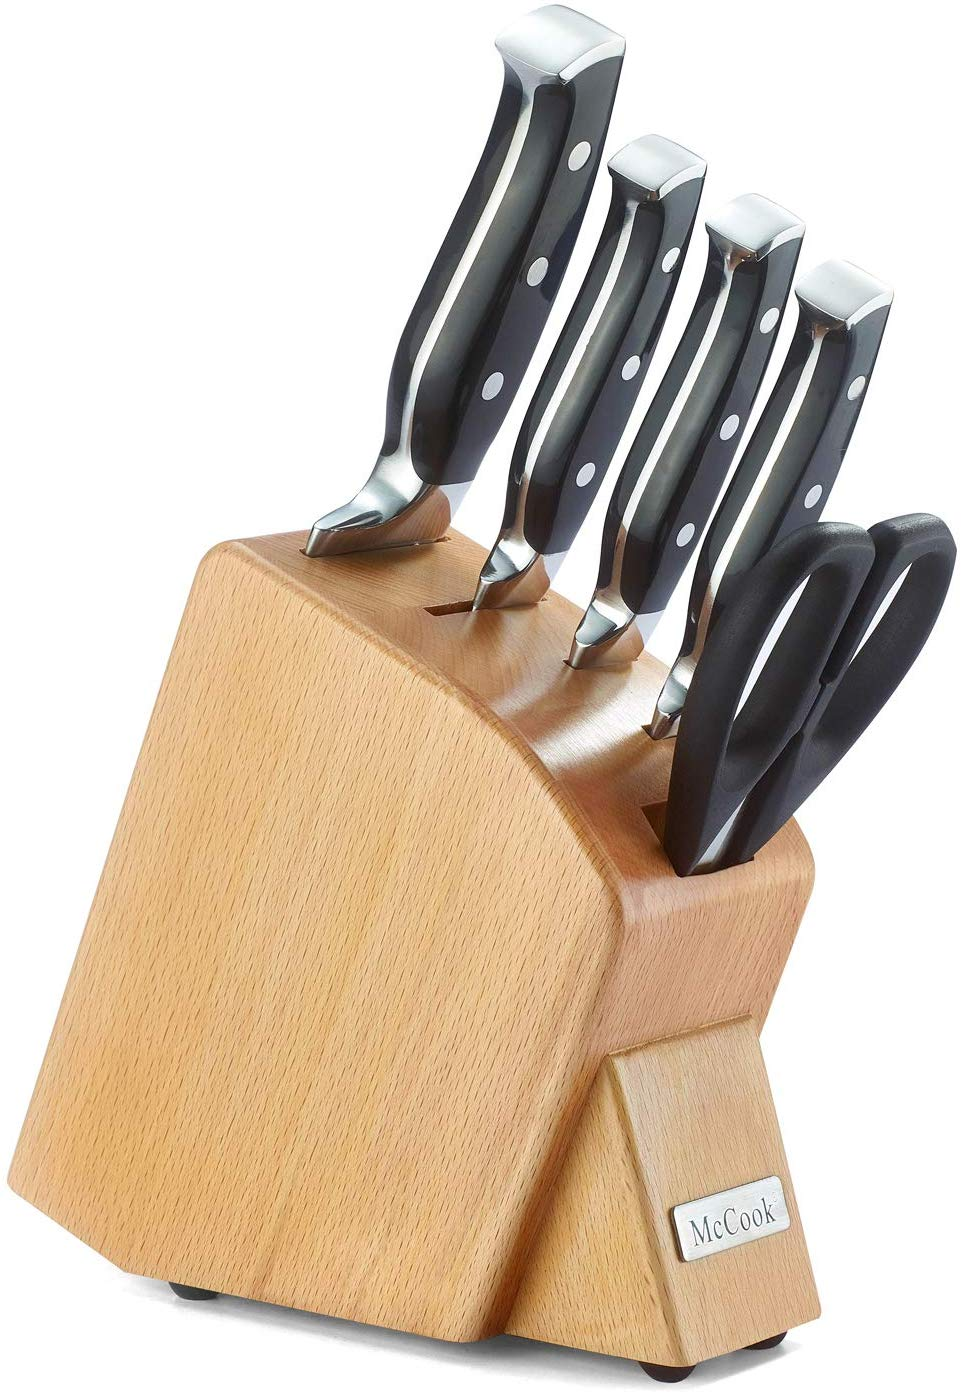 McCook MC41 6 Pieces Forged Triple Rivet Kitchen Knife Set in Natural Beech Wood Slim Block Approved by FDA